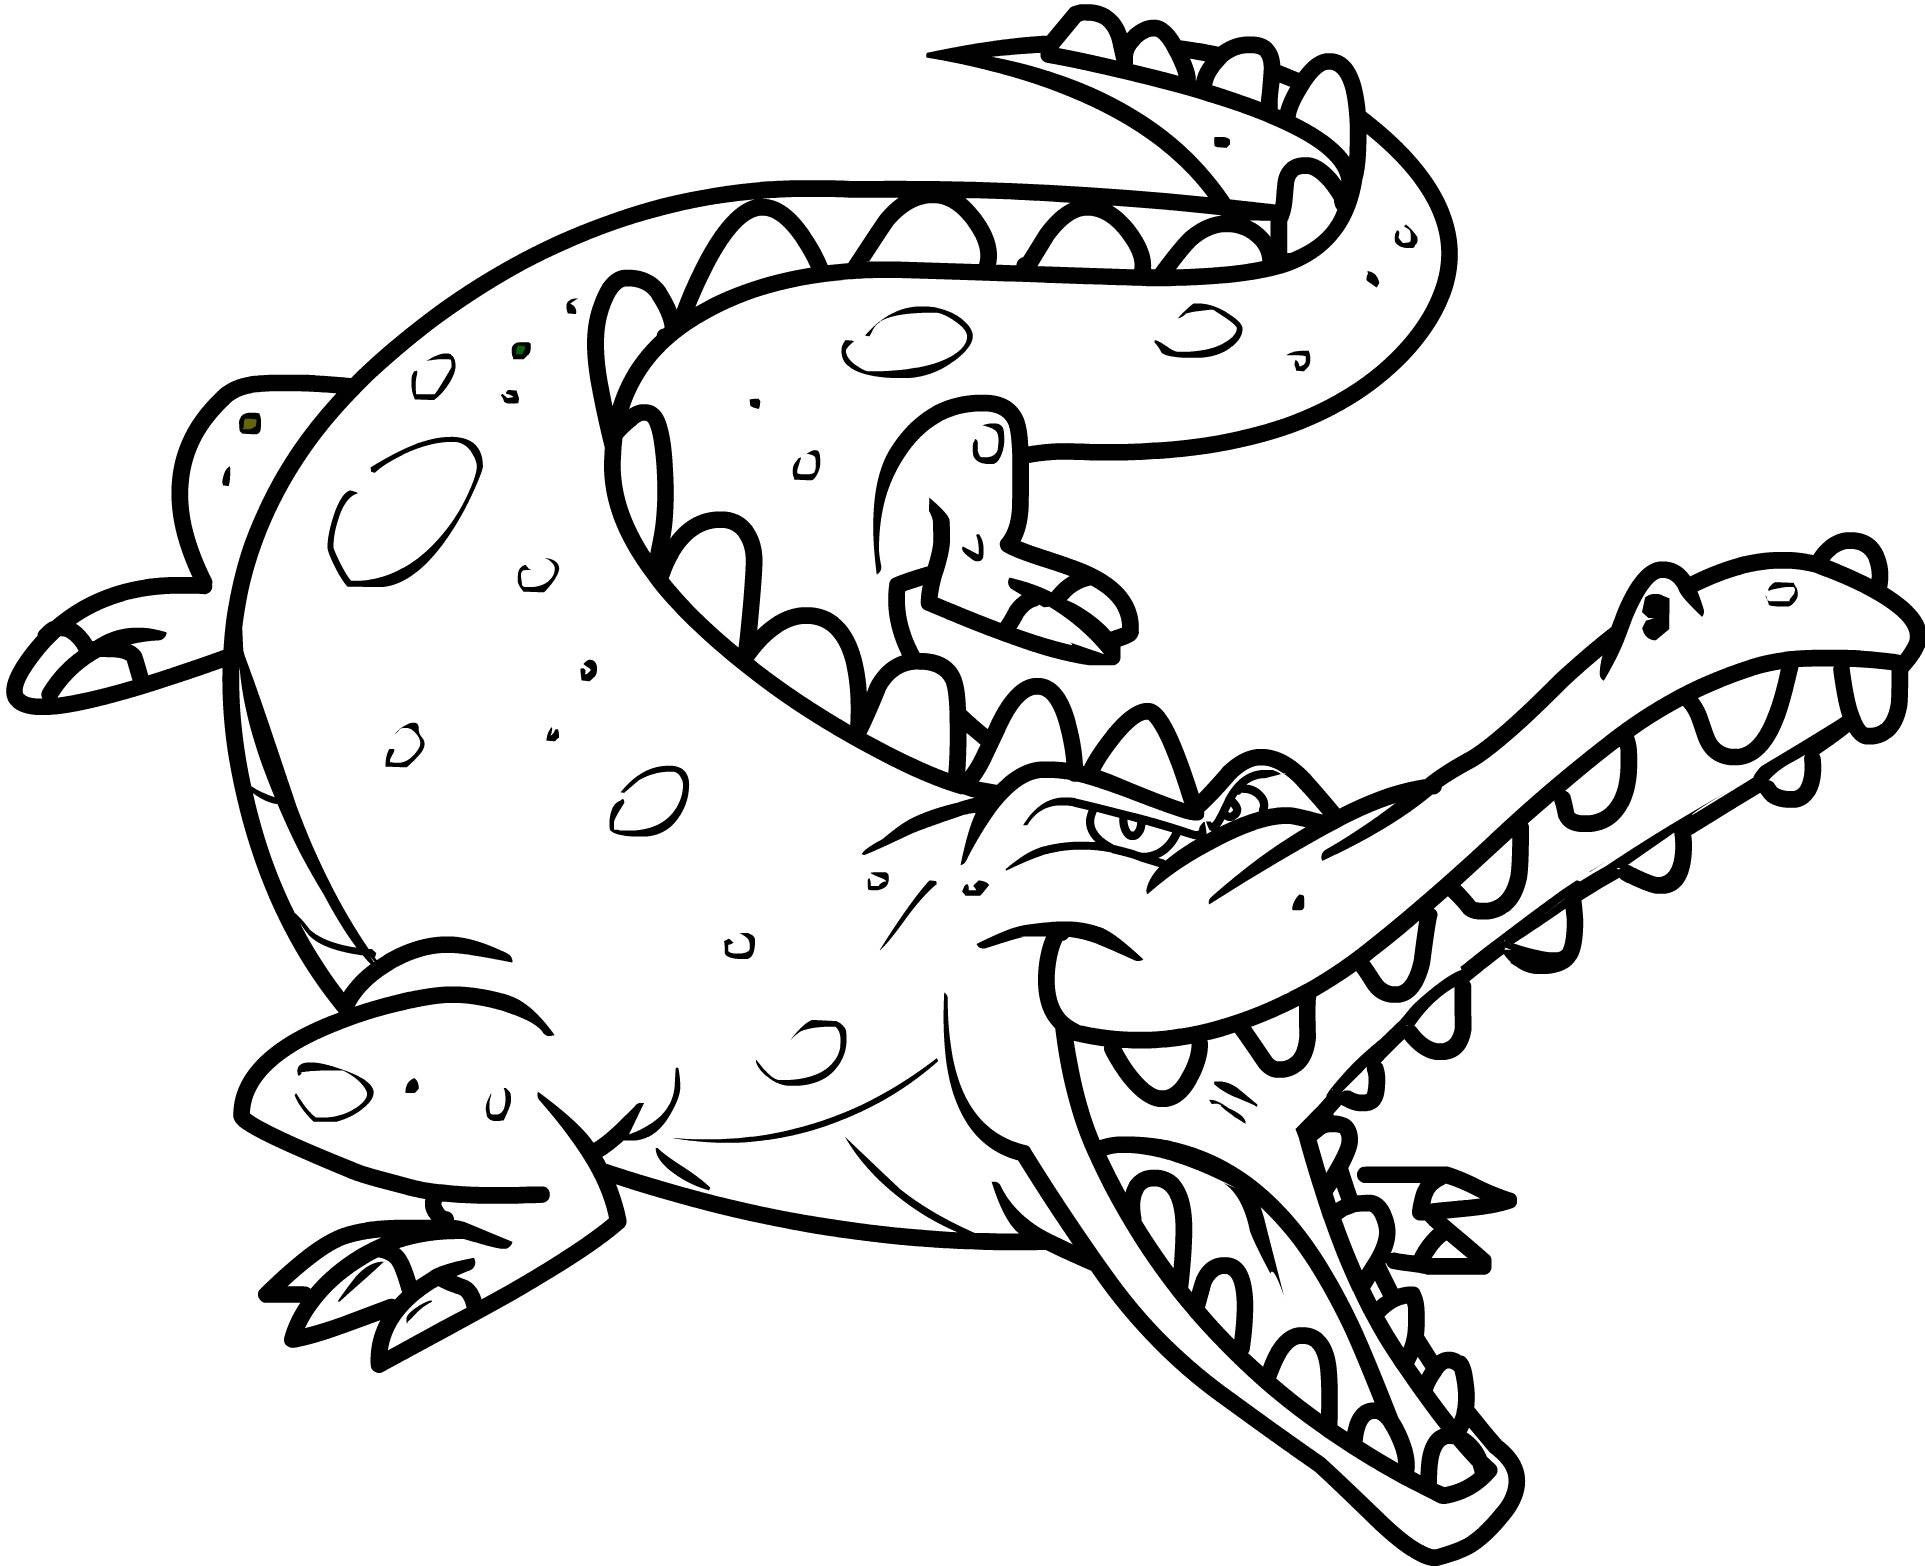 Free Printable Crocodile Coloring Pages For Kids | Crocodile, Free ...